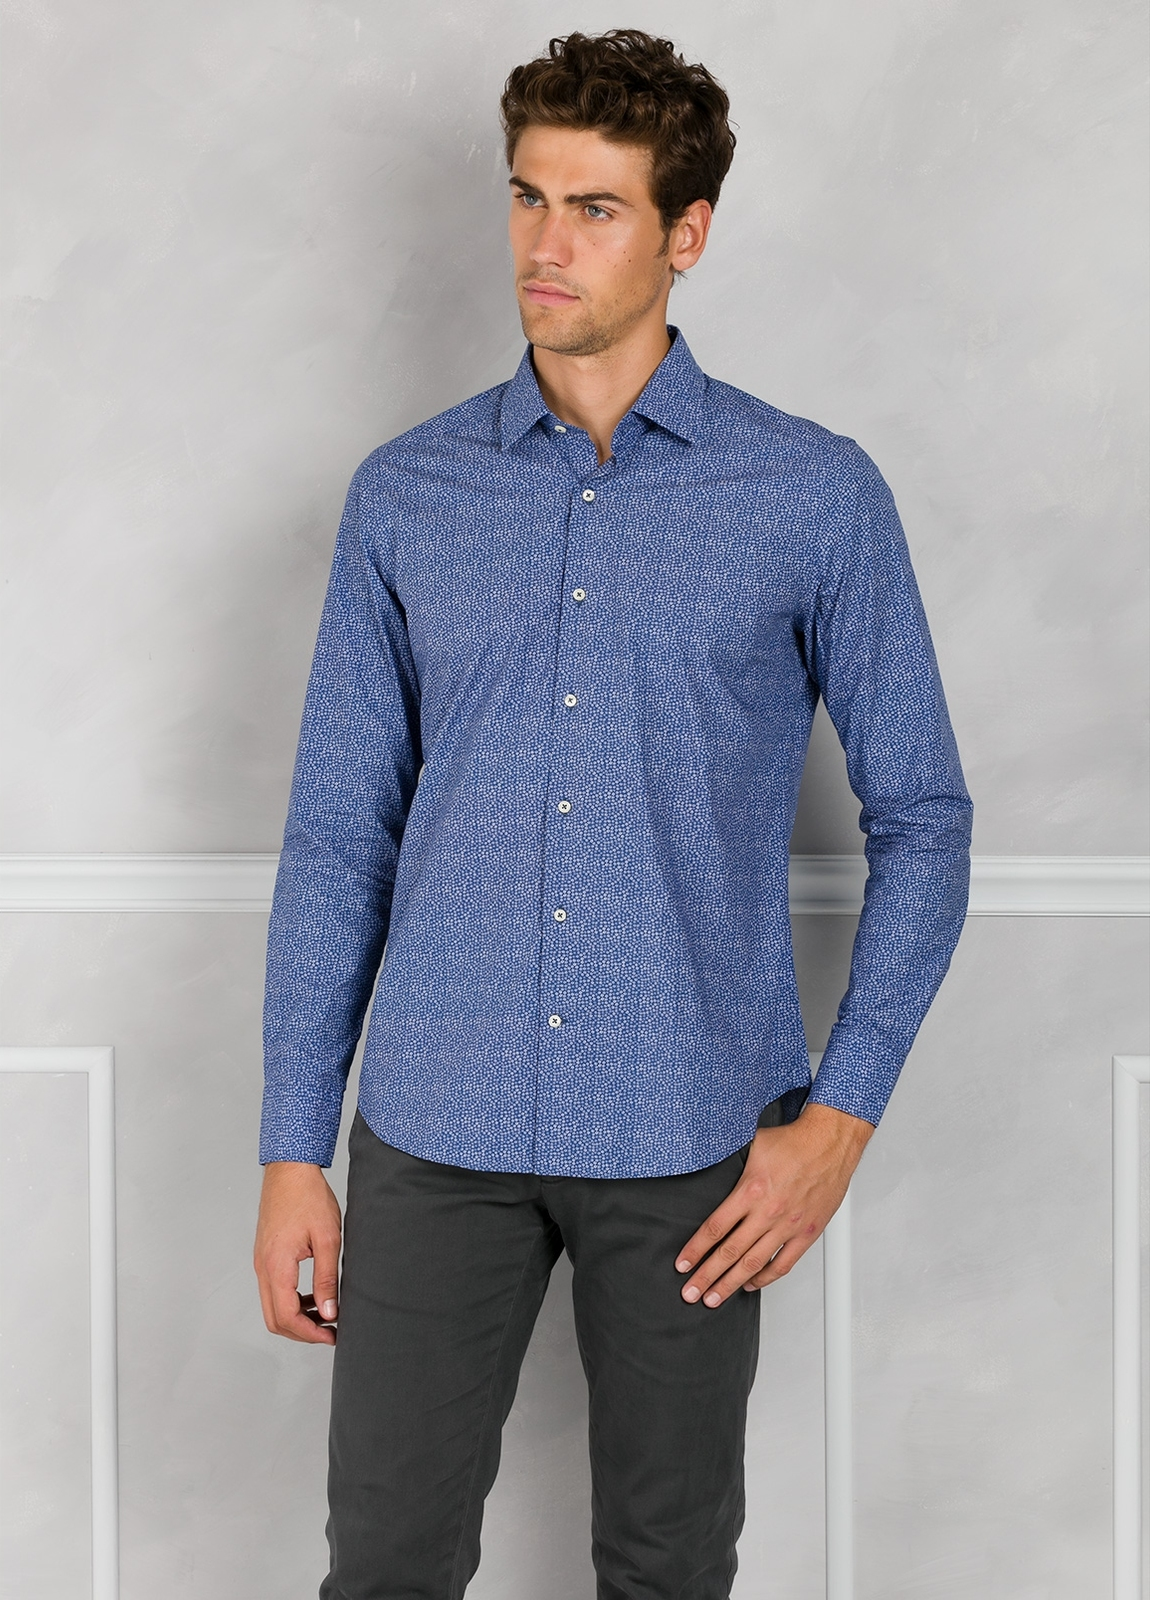 Camisa Leisure Wear SLIM FIT modelo PORTO micro dibujo color azul. 100% Algodón.